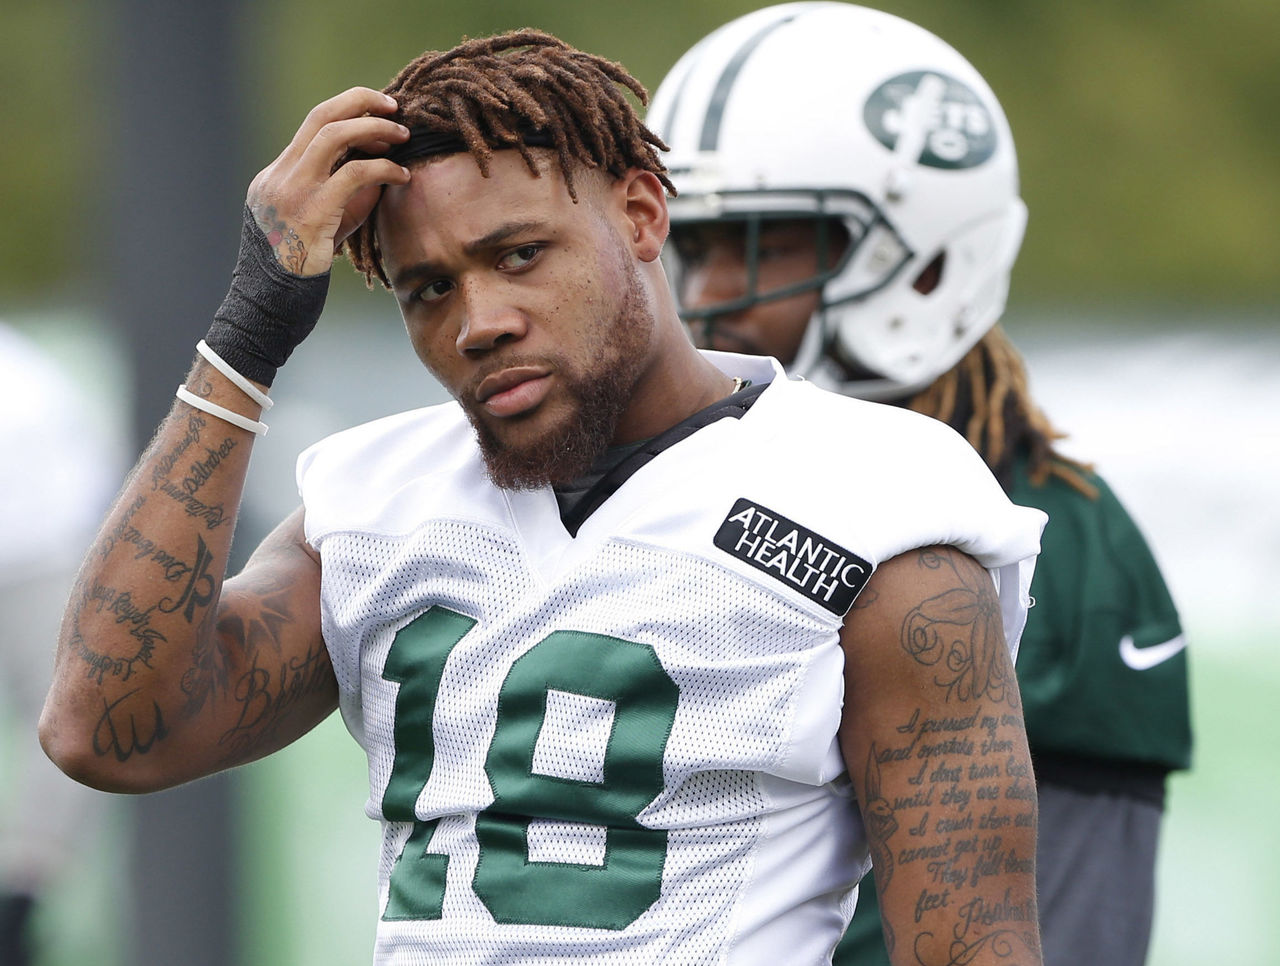 Cropped_2017-07-29t202302z_1830750698_nocid_rtrmadp_3_nfl-new-york-jets-training-camp